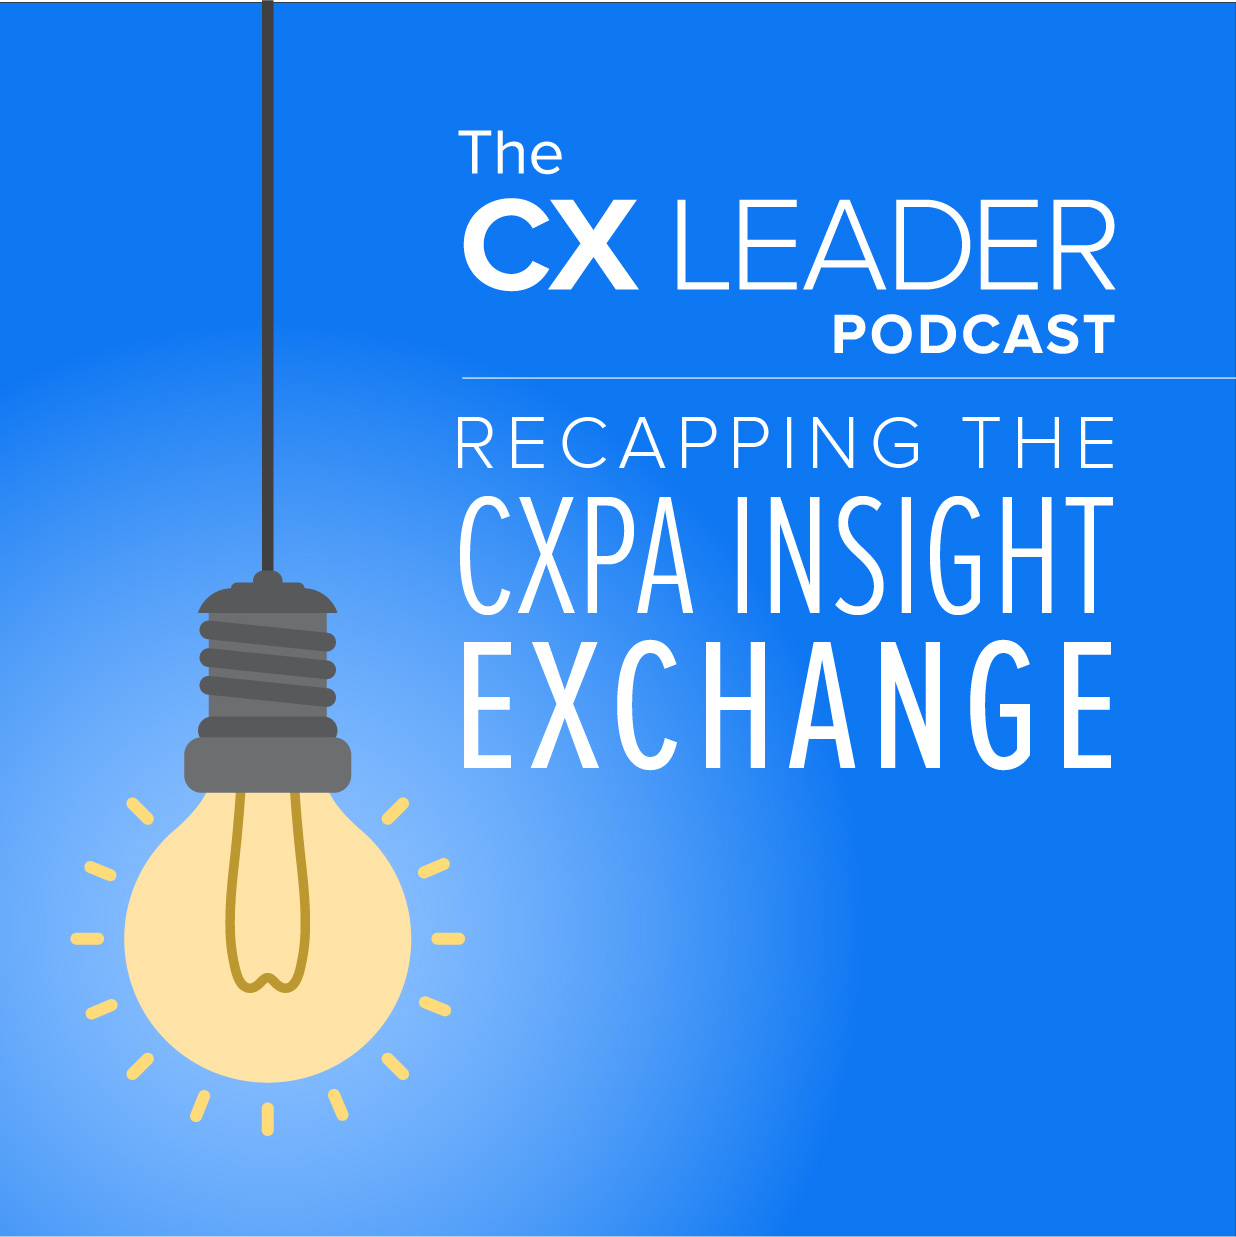 Recapping the CXPA Insight Exchange (Part 2)